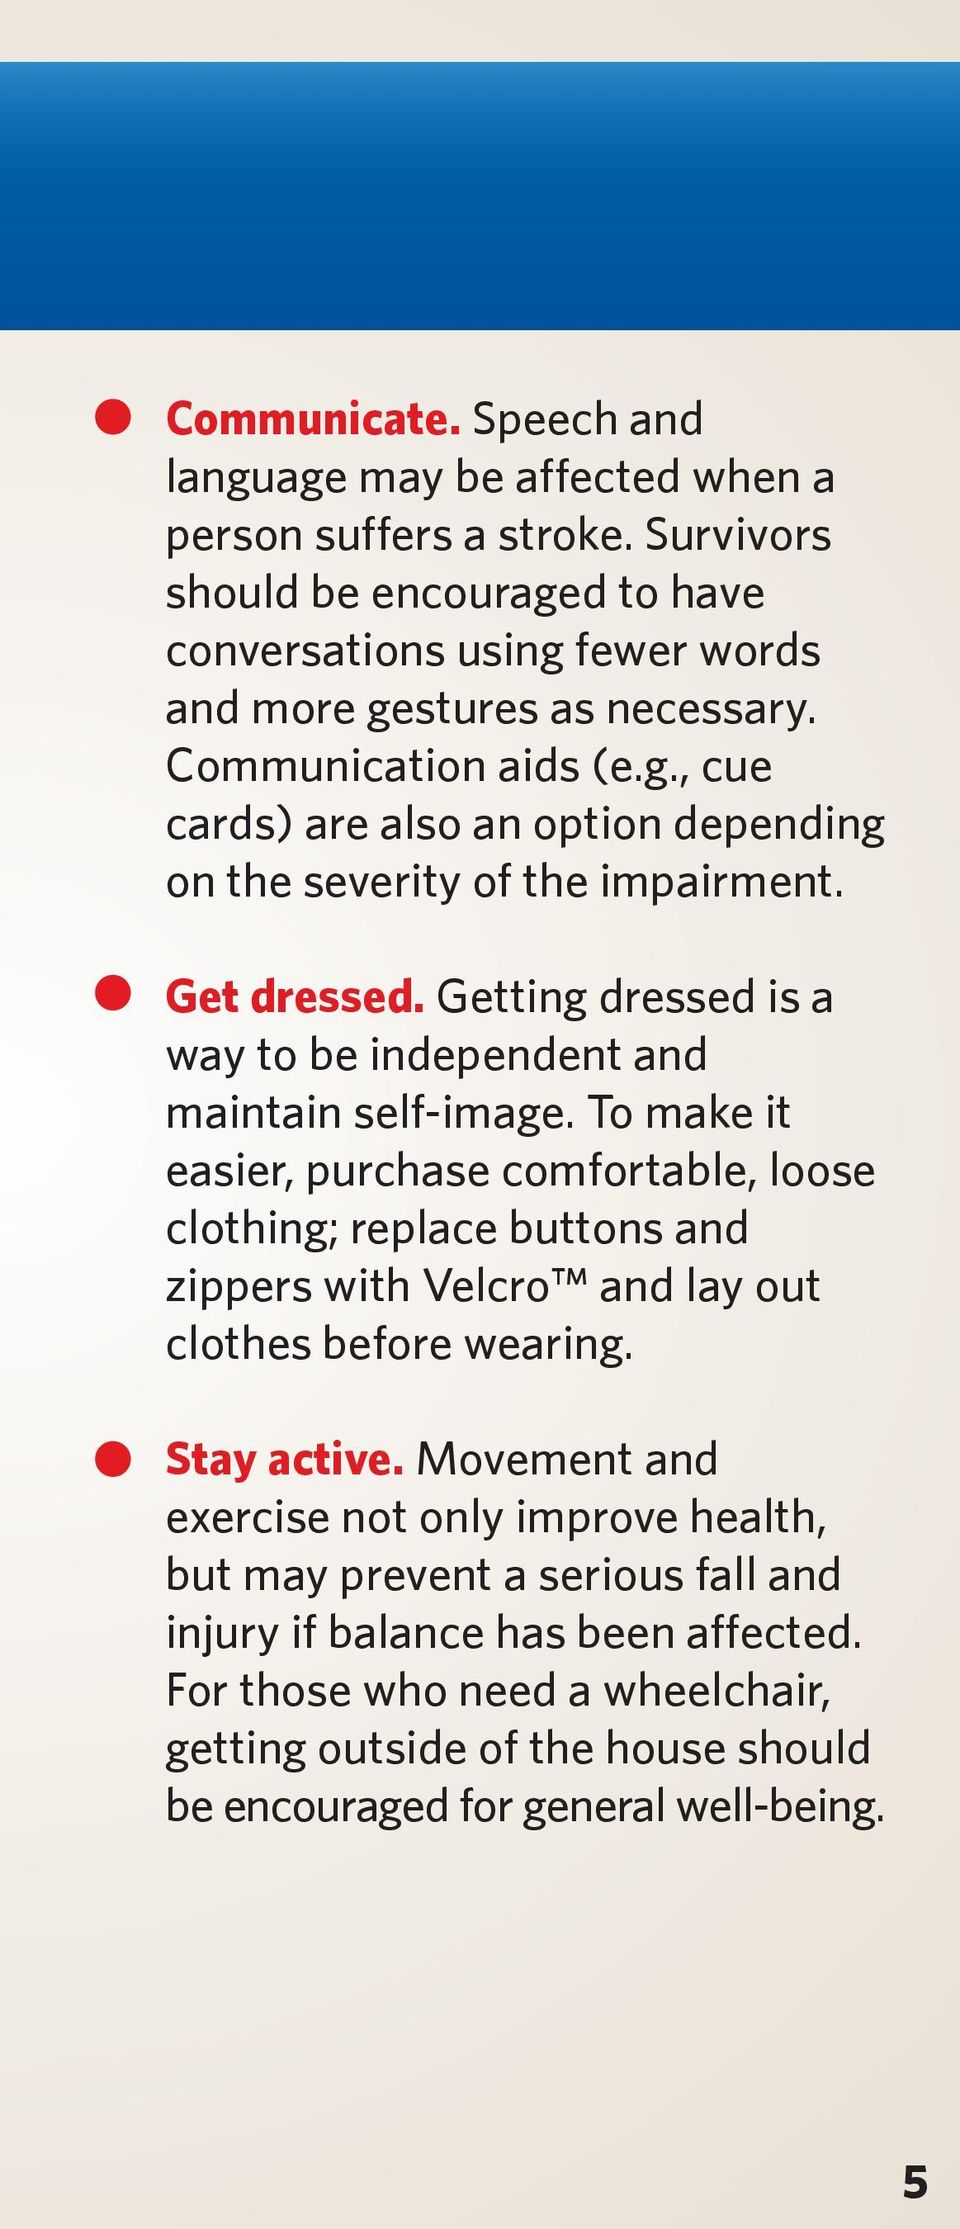 To make it easier, purchase comfortable, loose clothing; replace buttons and zippers with Velcro and lay out clothes before wearing. Stay active.